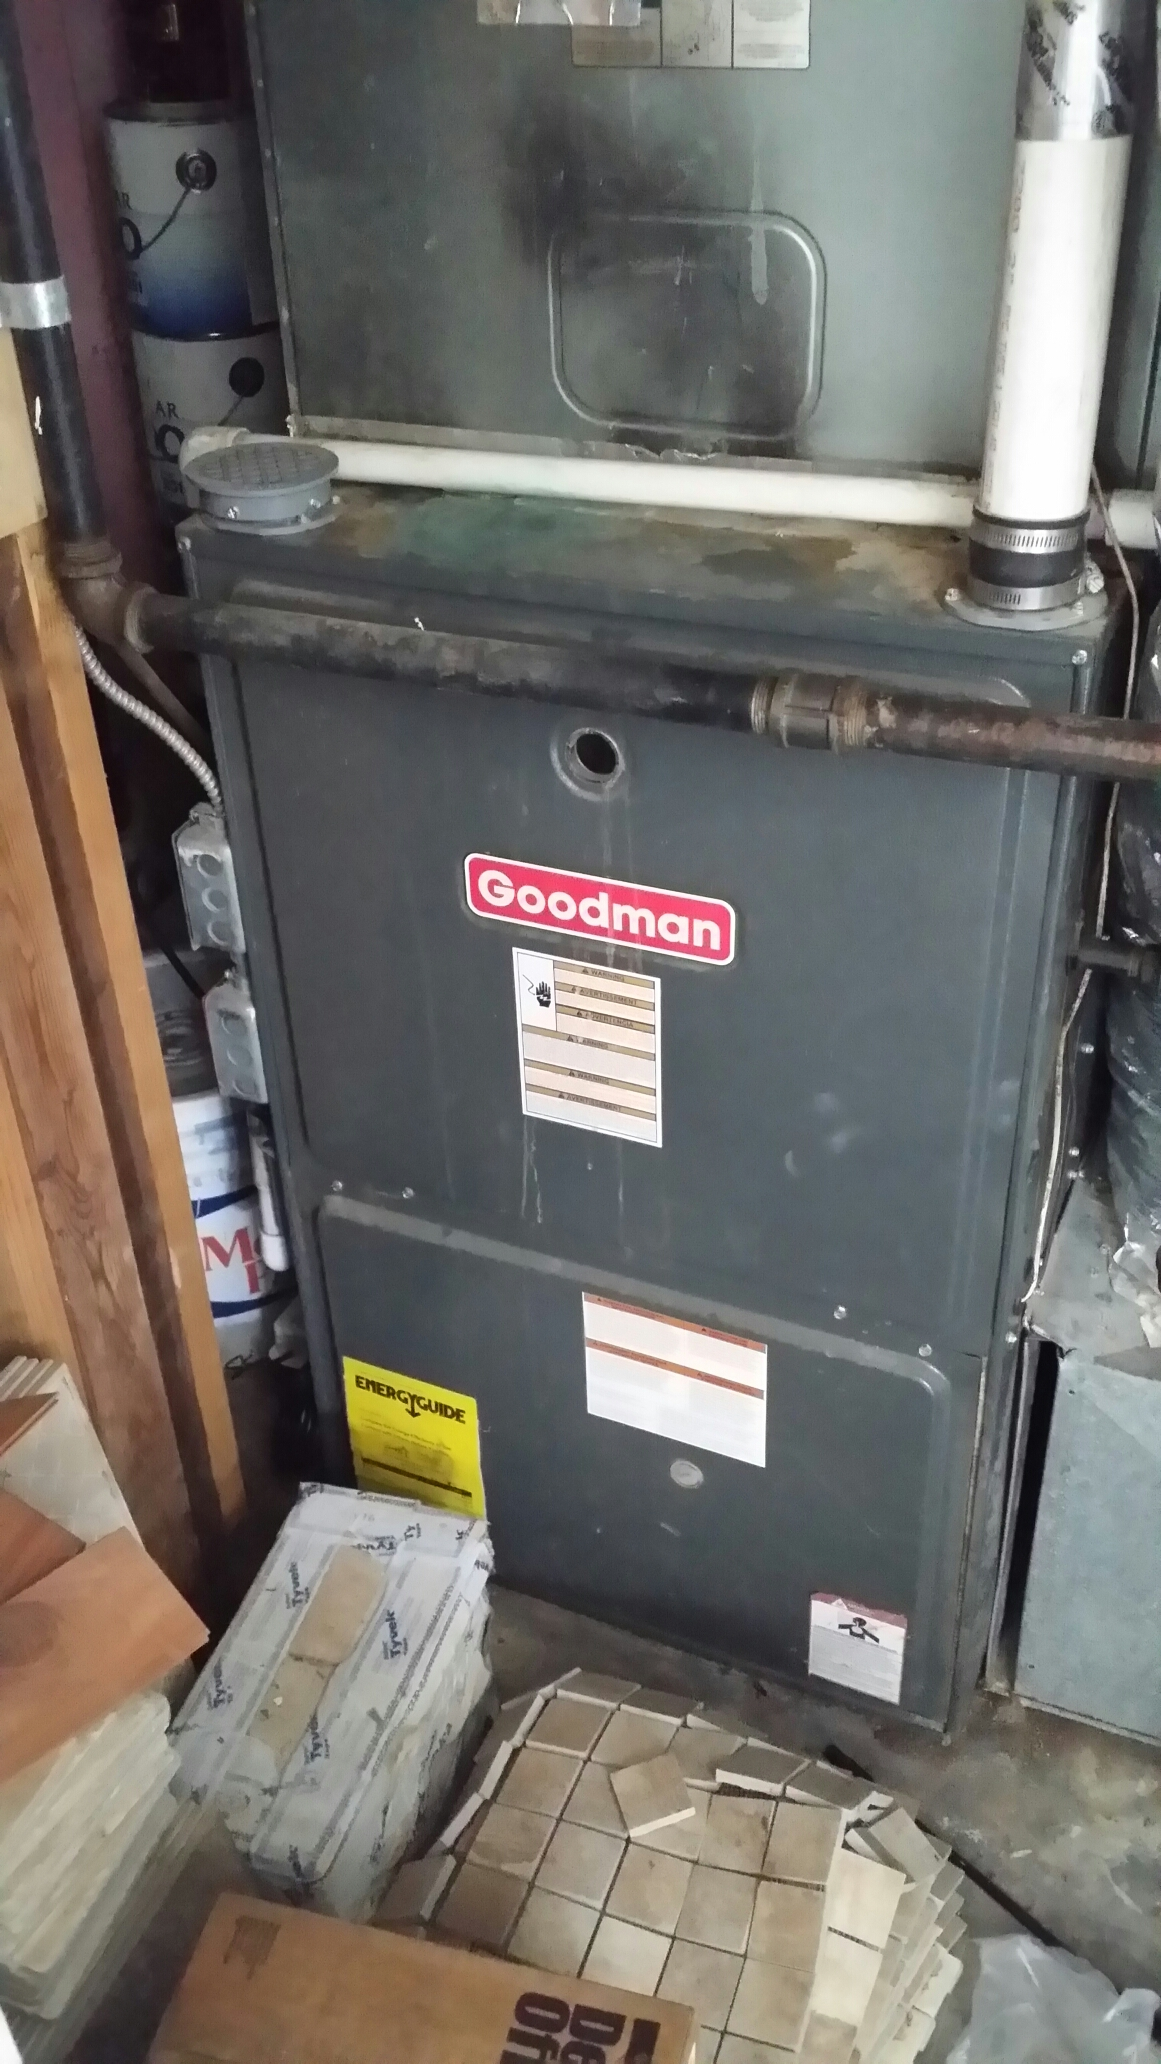 Manasquan, NJ - Heater service call. No heat from a Goodman 90% gas furnace. Low battiers on Honeywell thermostat in Manasquan NJ